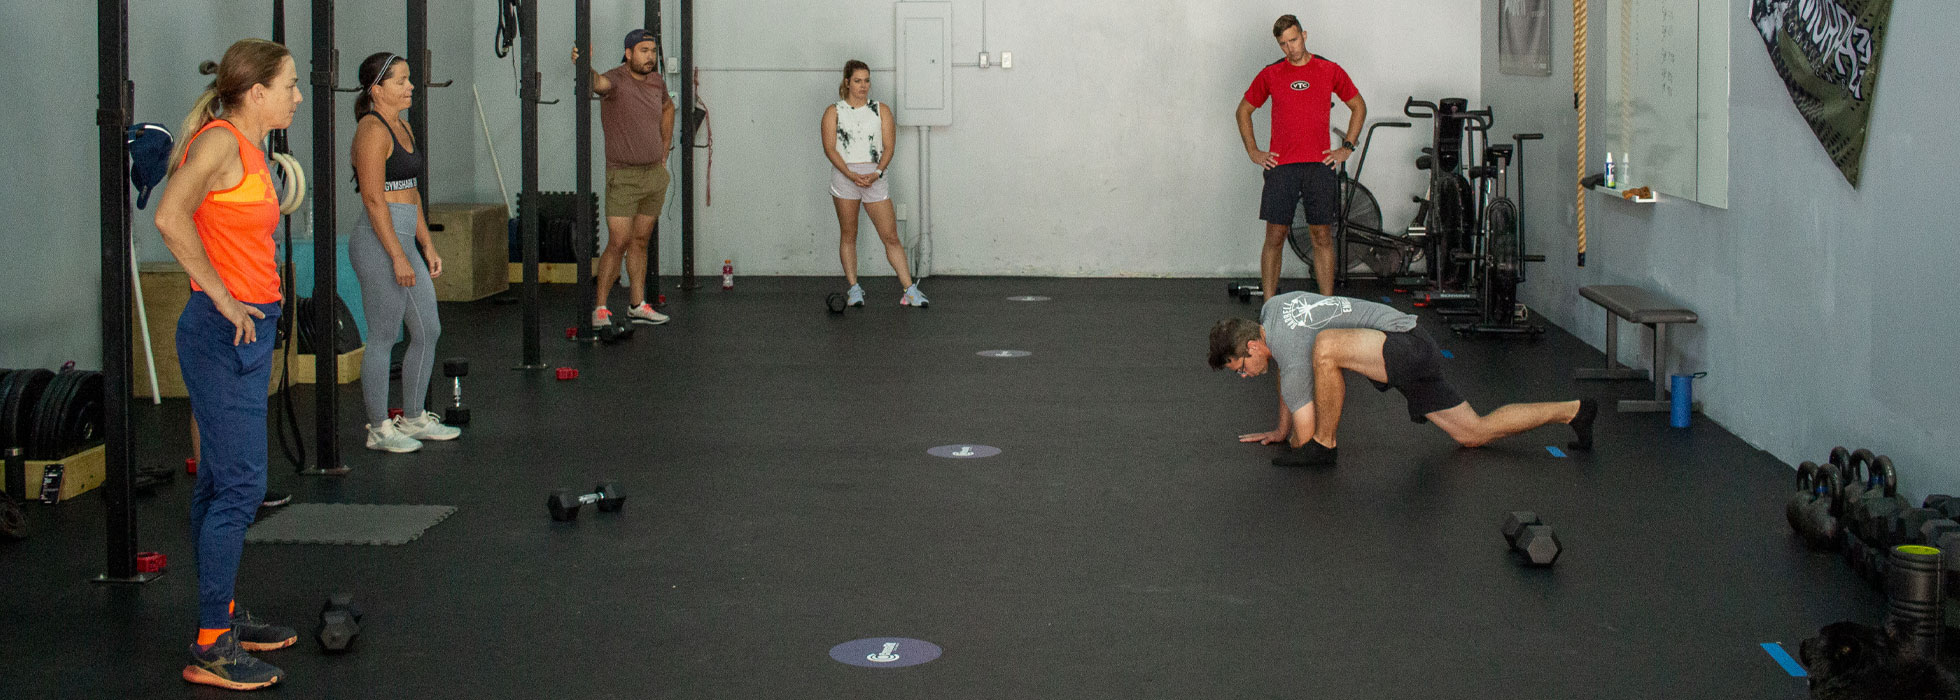 CrossFit Group Fitness Classes Near Me In Chilliwack